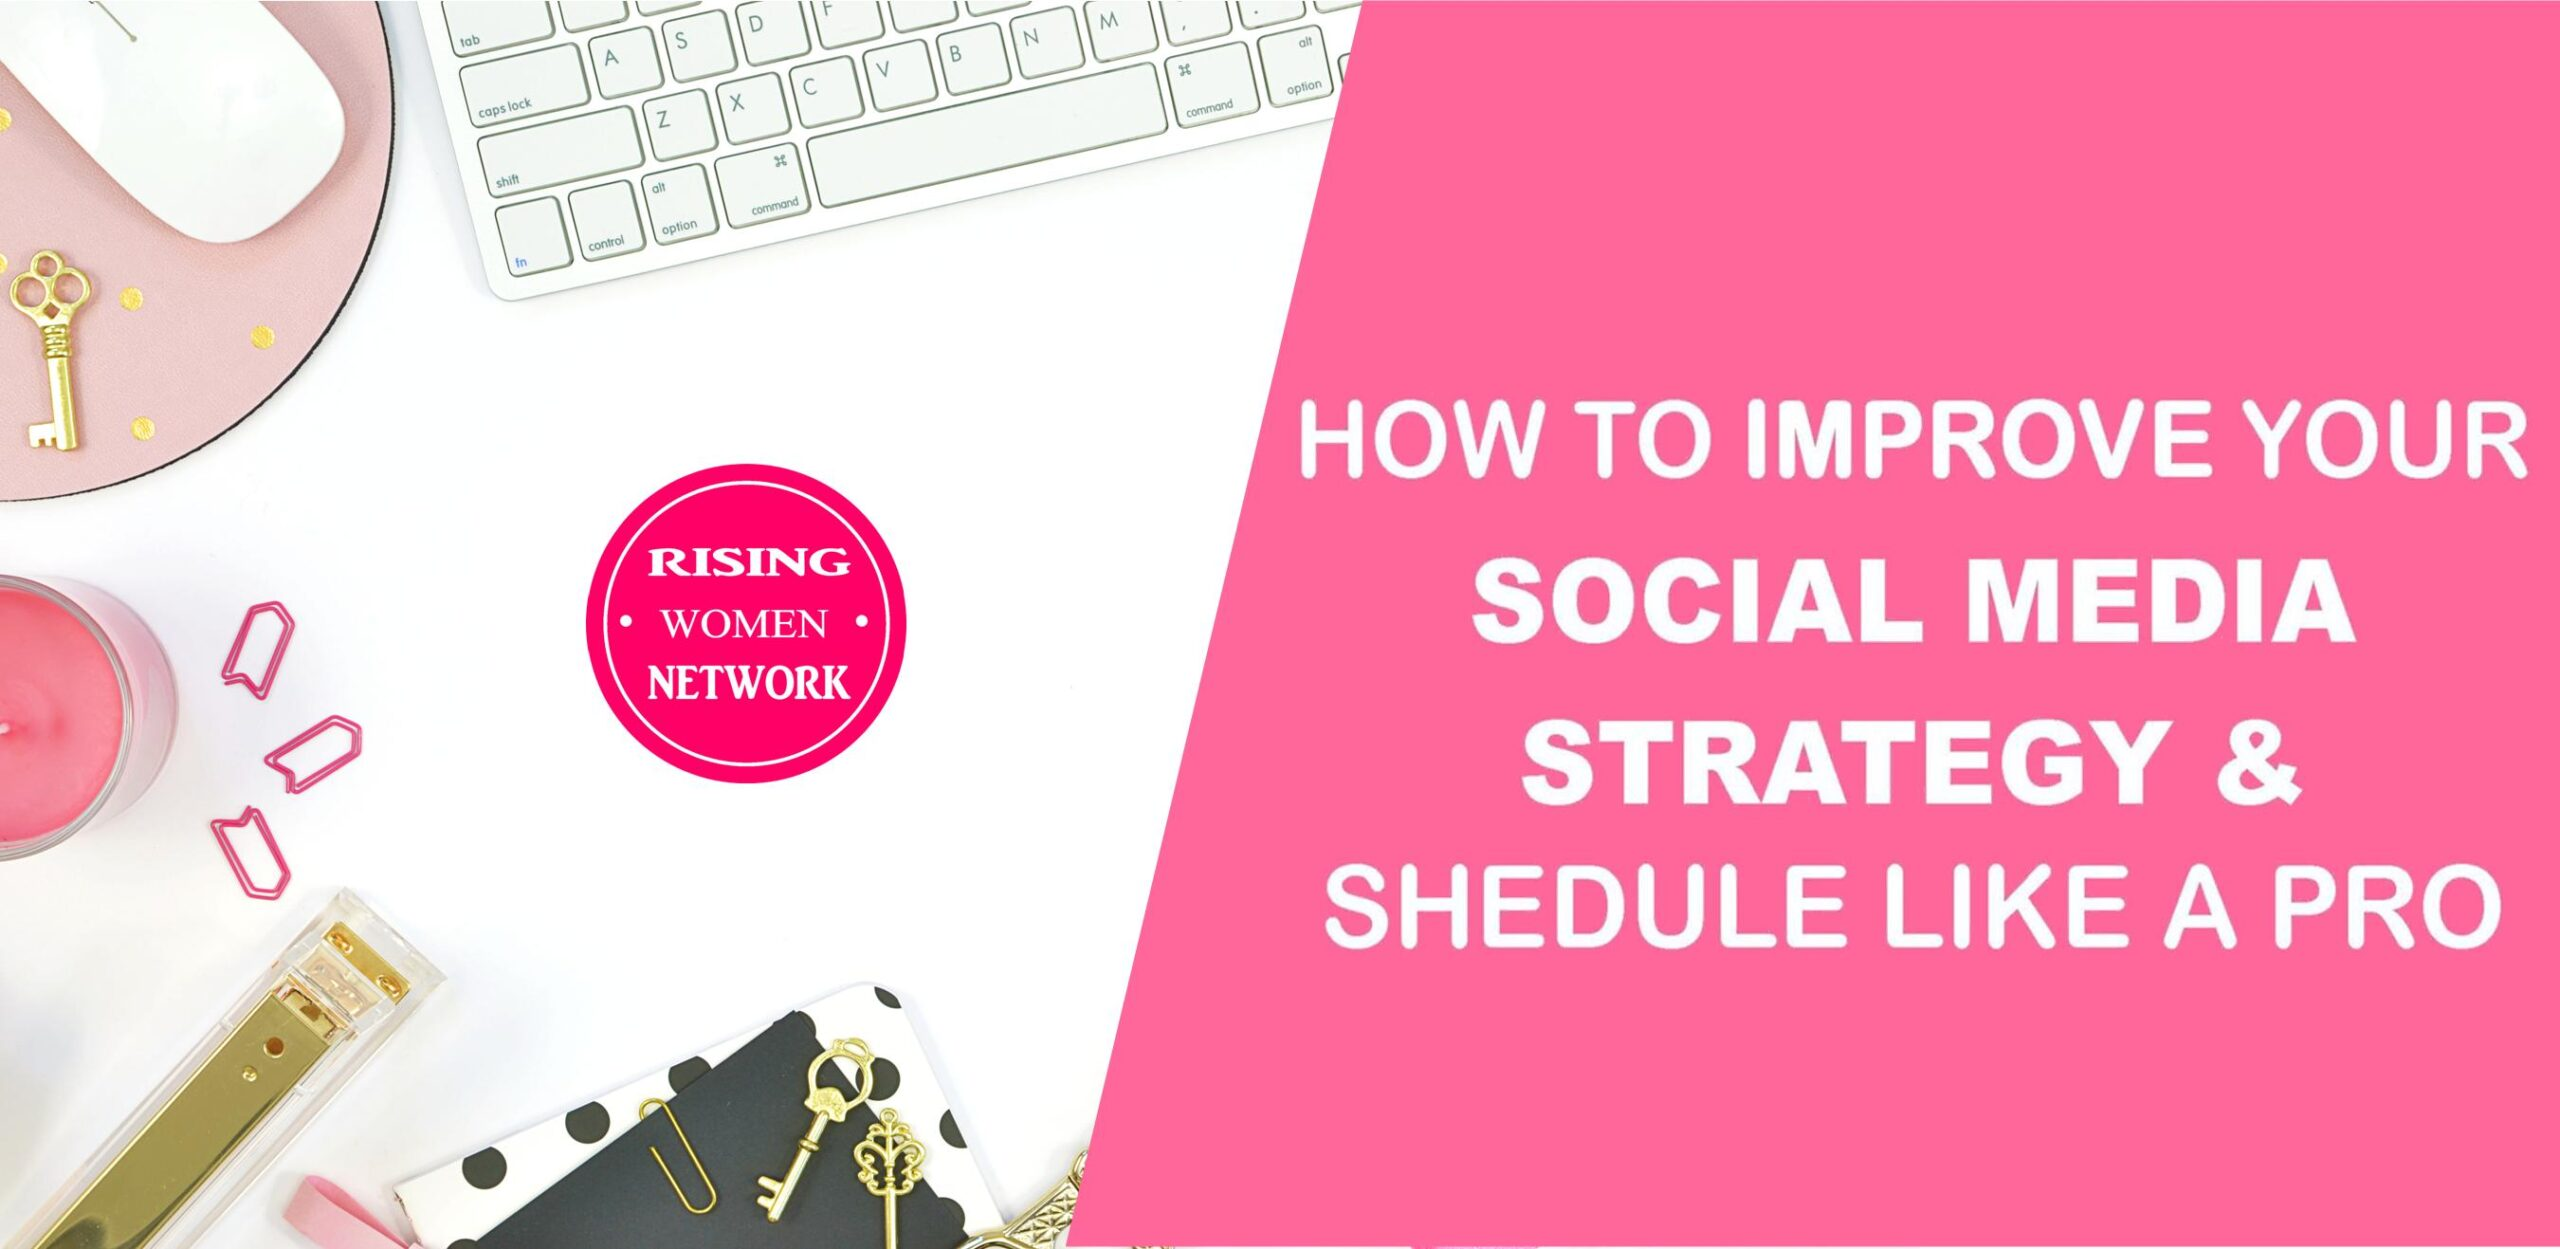 How to Improve Your Social Media Strategy and Schedule Like a Pro